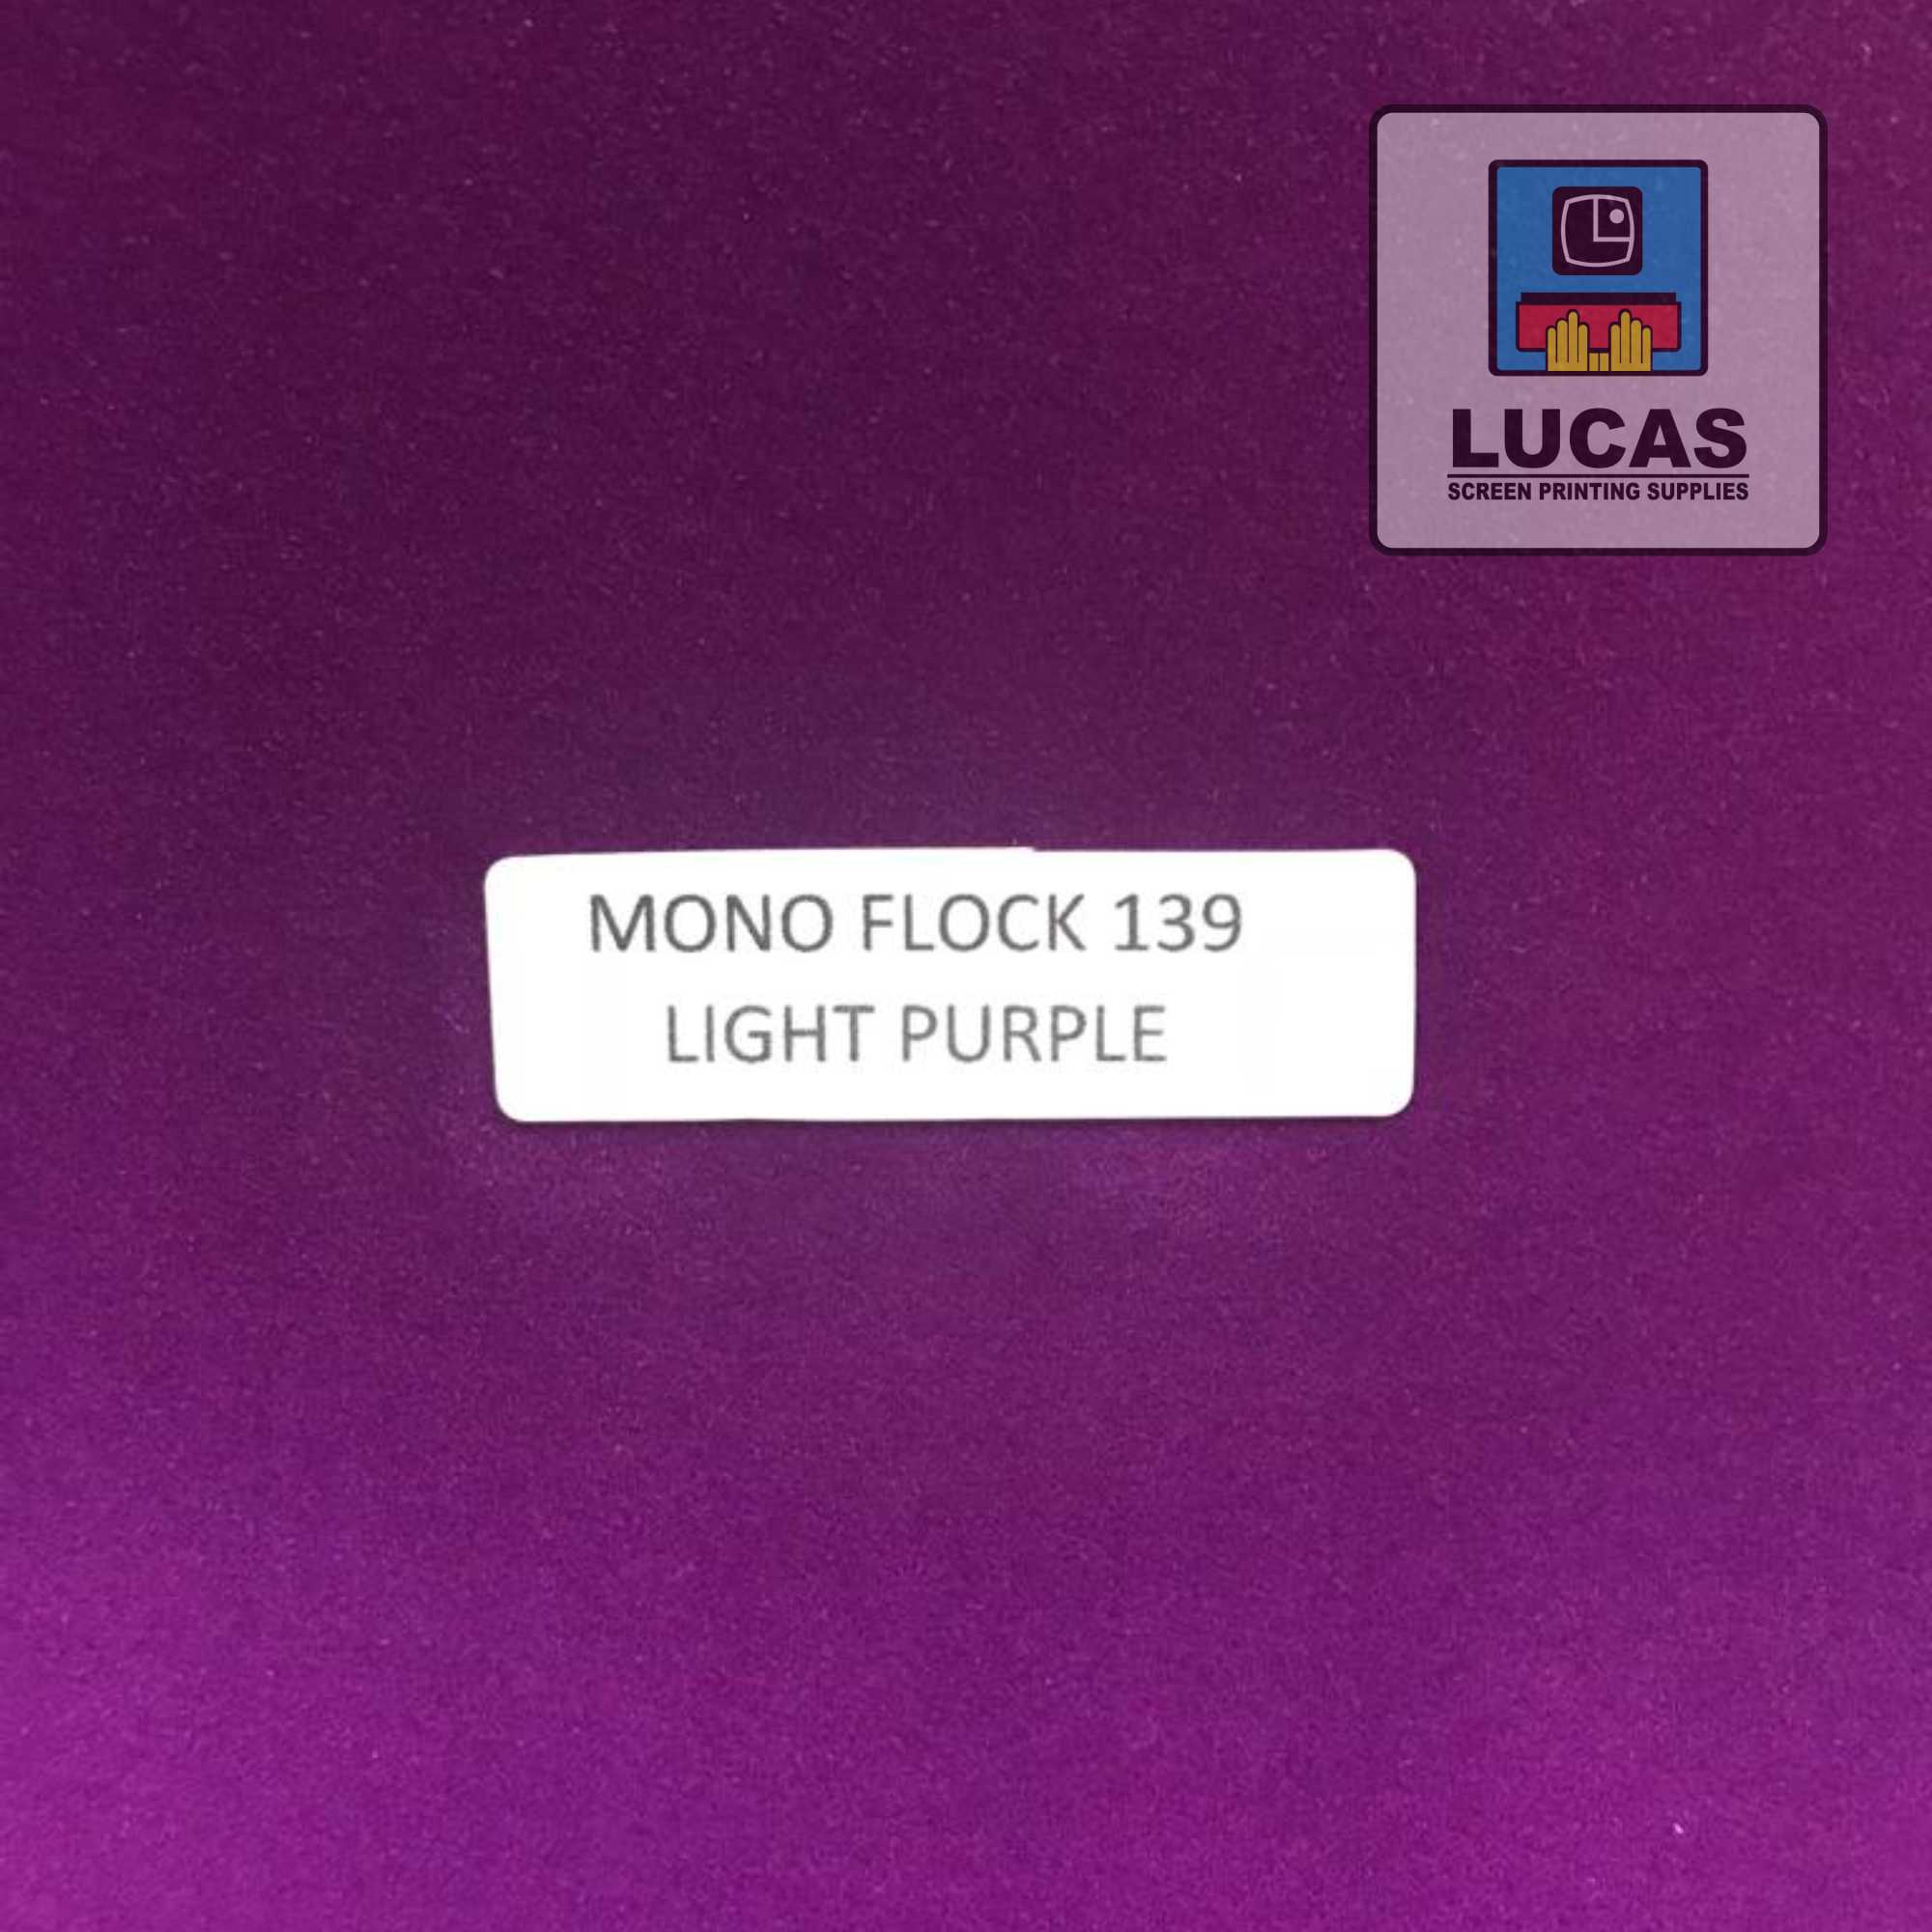 MONO FLOCK 139 LIGHT PURPLE.jpg